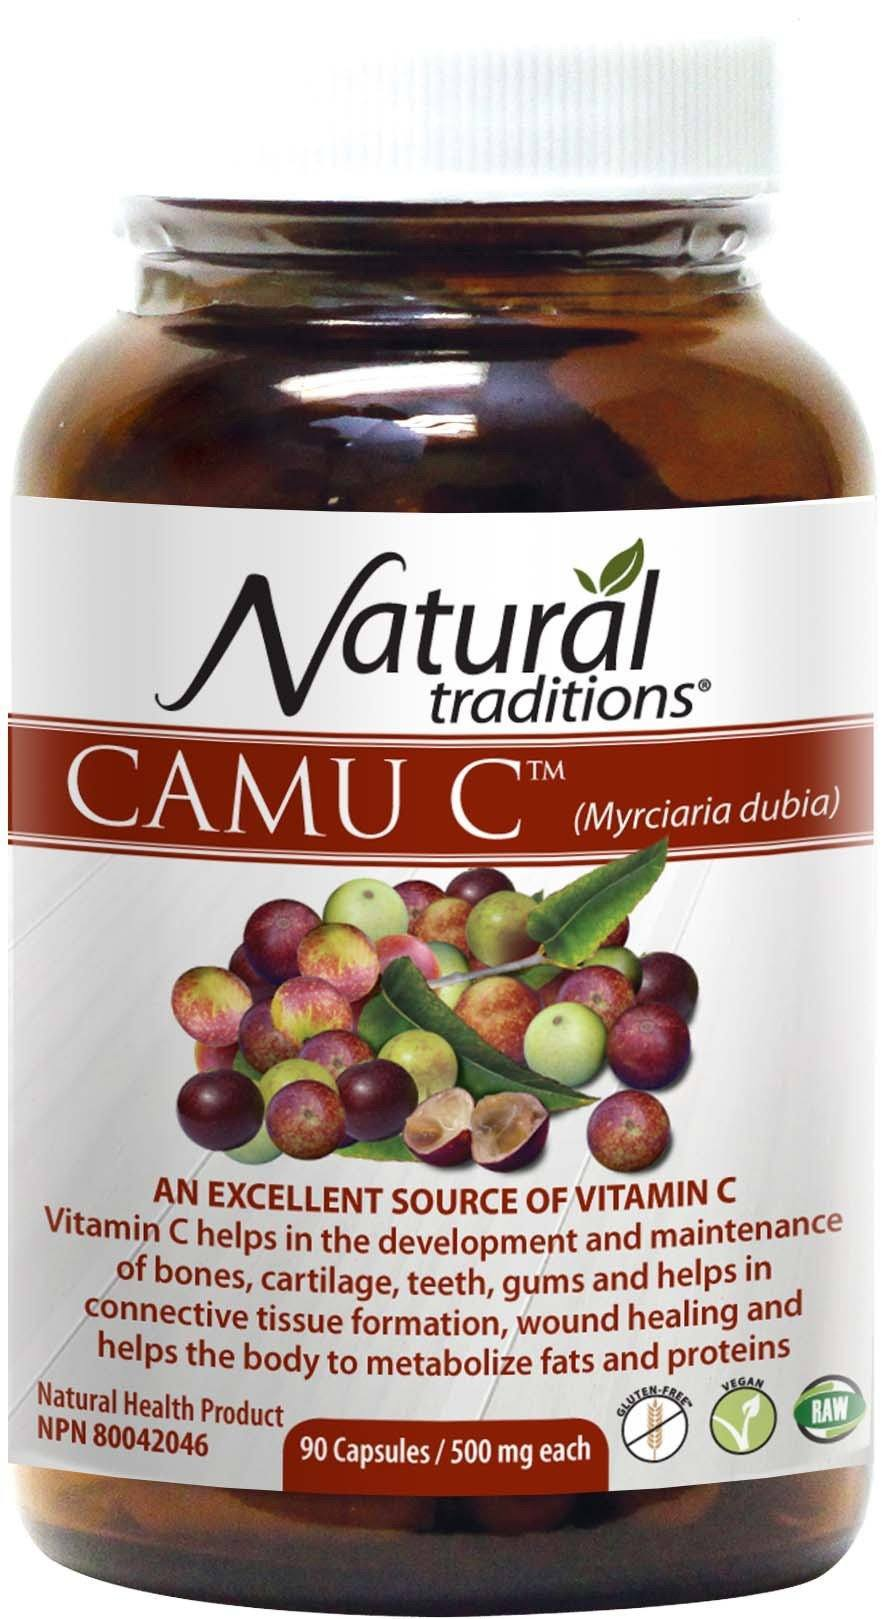 Supplements & Vitamins - Natural Traditions - Camu C, 90 Capsules